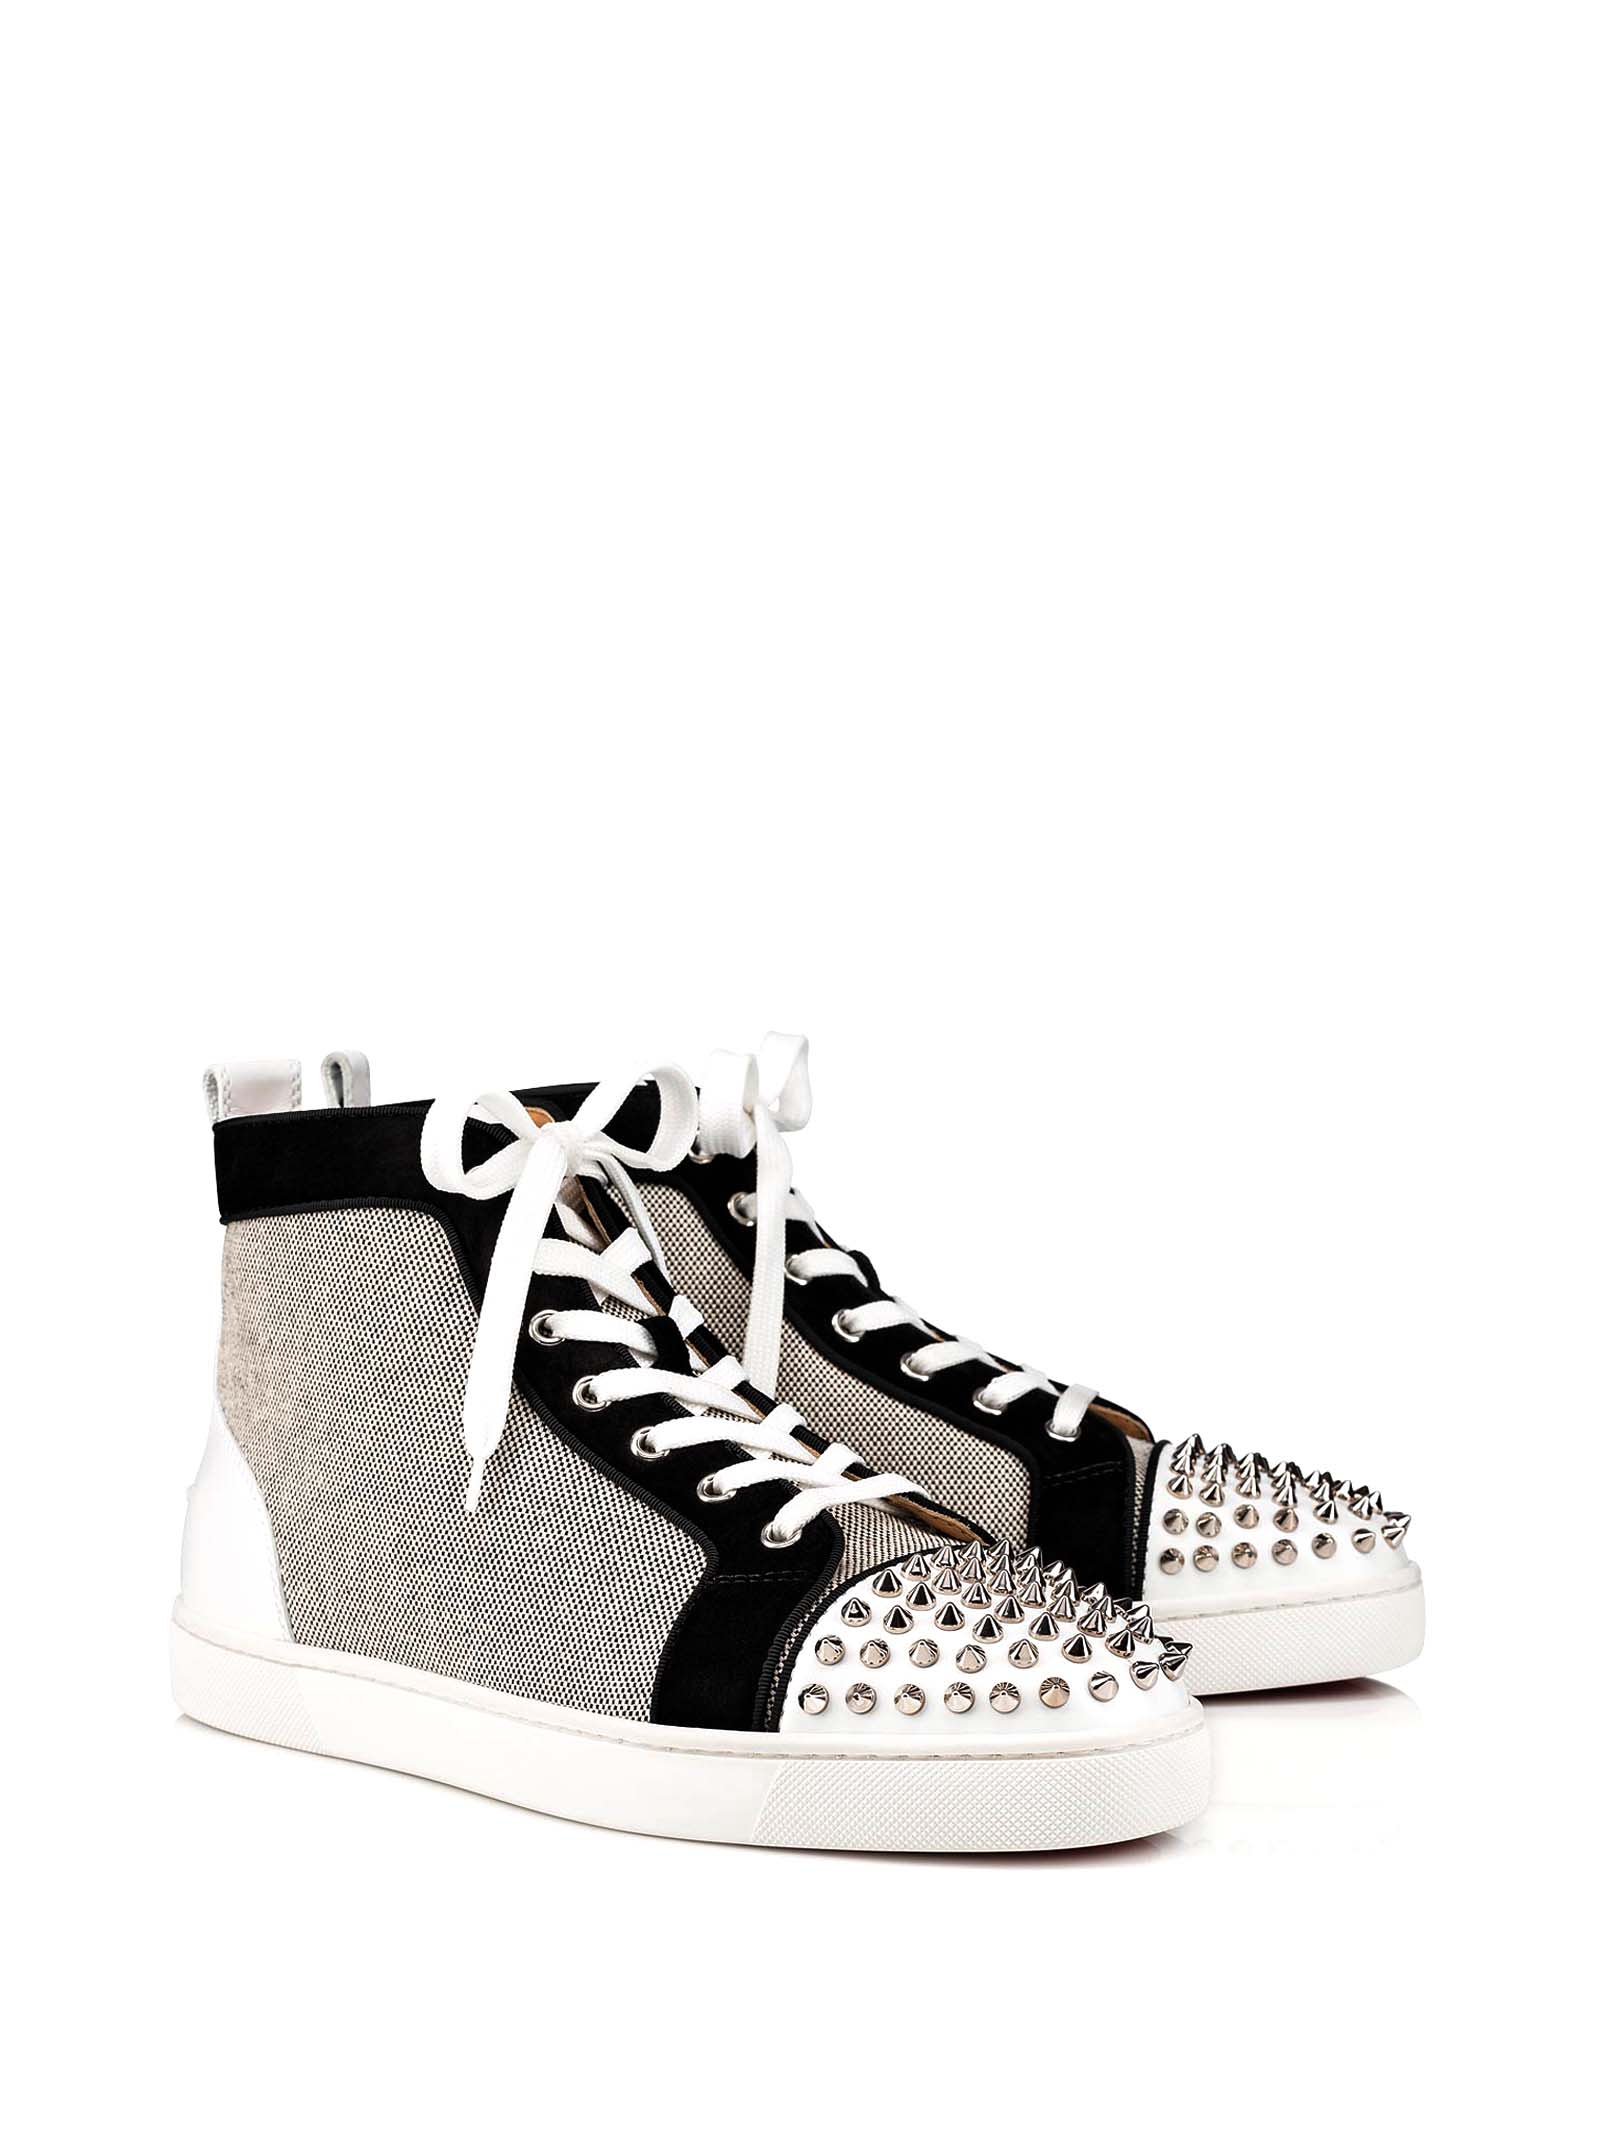 on sale 0ce18 bdec9 Best price on the market at italist | Christian Louboutin Christian  Louboutin Louboutin Lou Spikes Orlato Sneakers